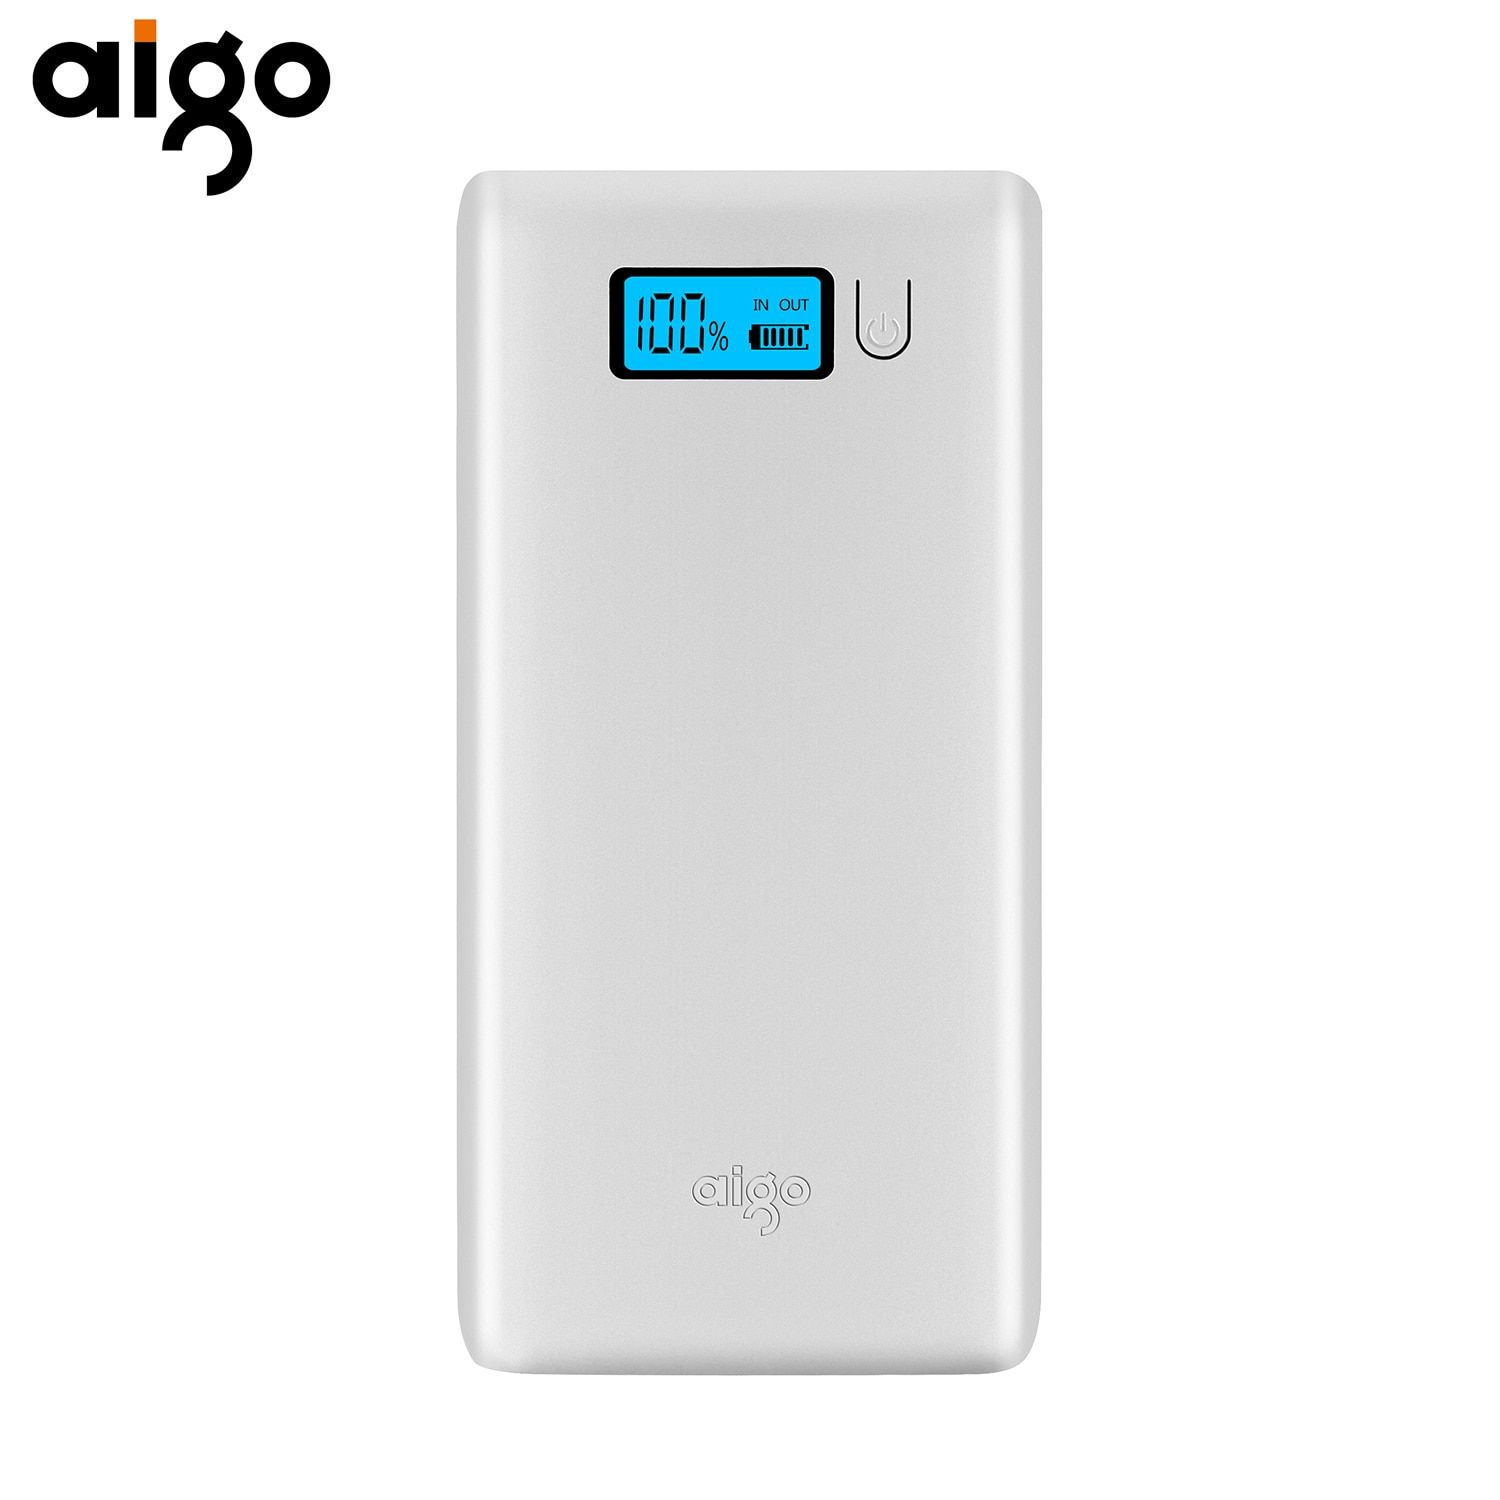 Aigo Power bank 20000mAh Smart Battery LCD Display Dual USB LED Light Portable High Speed Charging Powerbank External Batteries